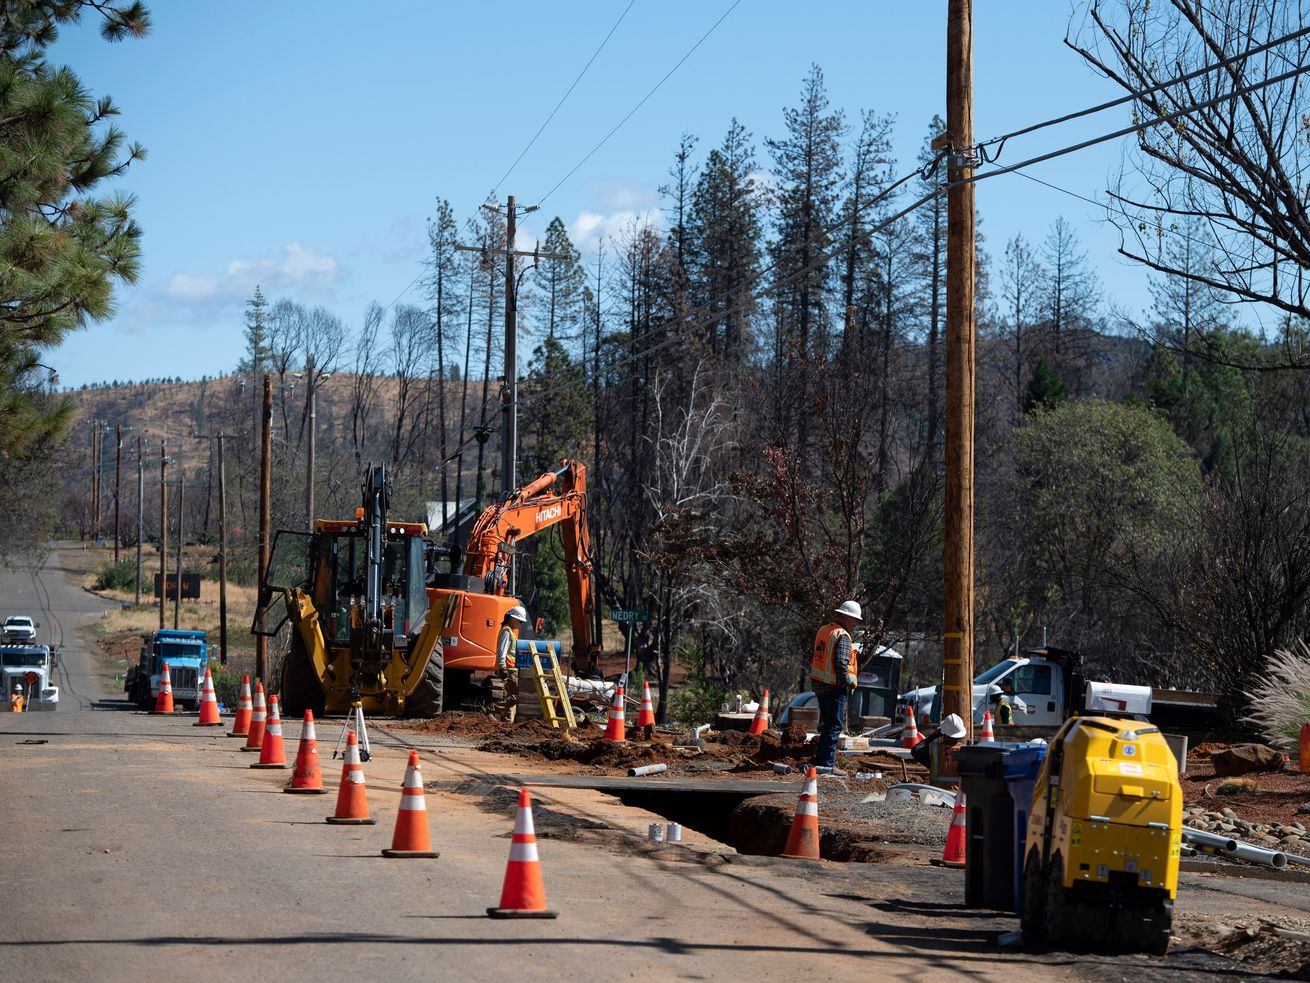 Pacific Gas & Electric workers install conduit in trenches for underground electric lines along a tree-lined road.